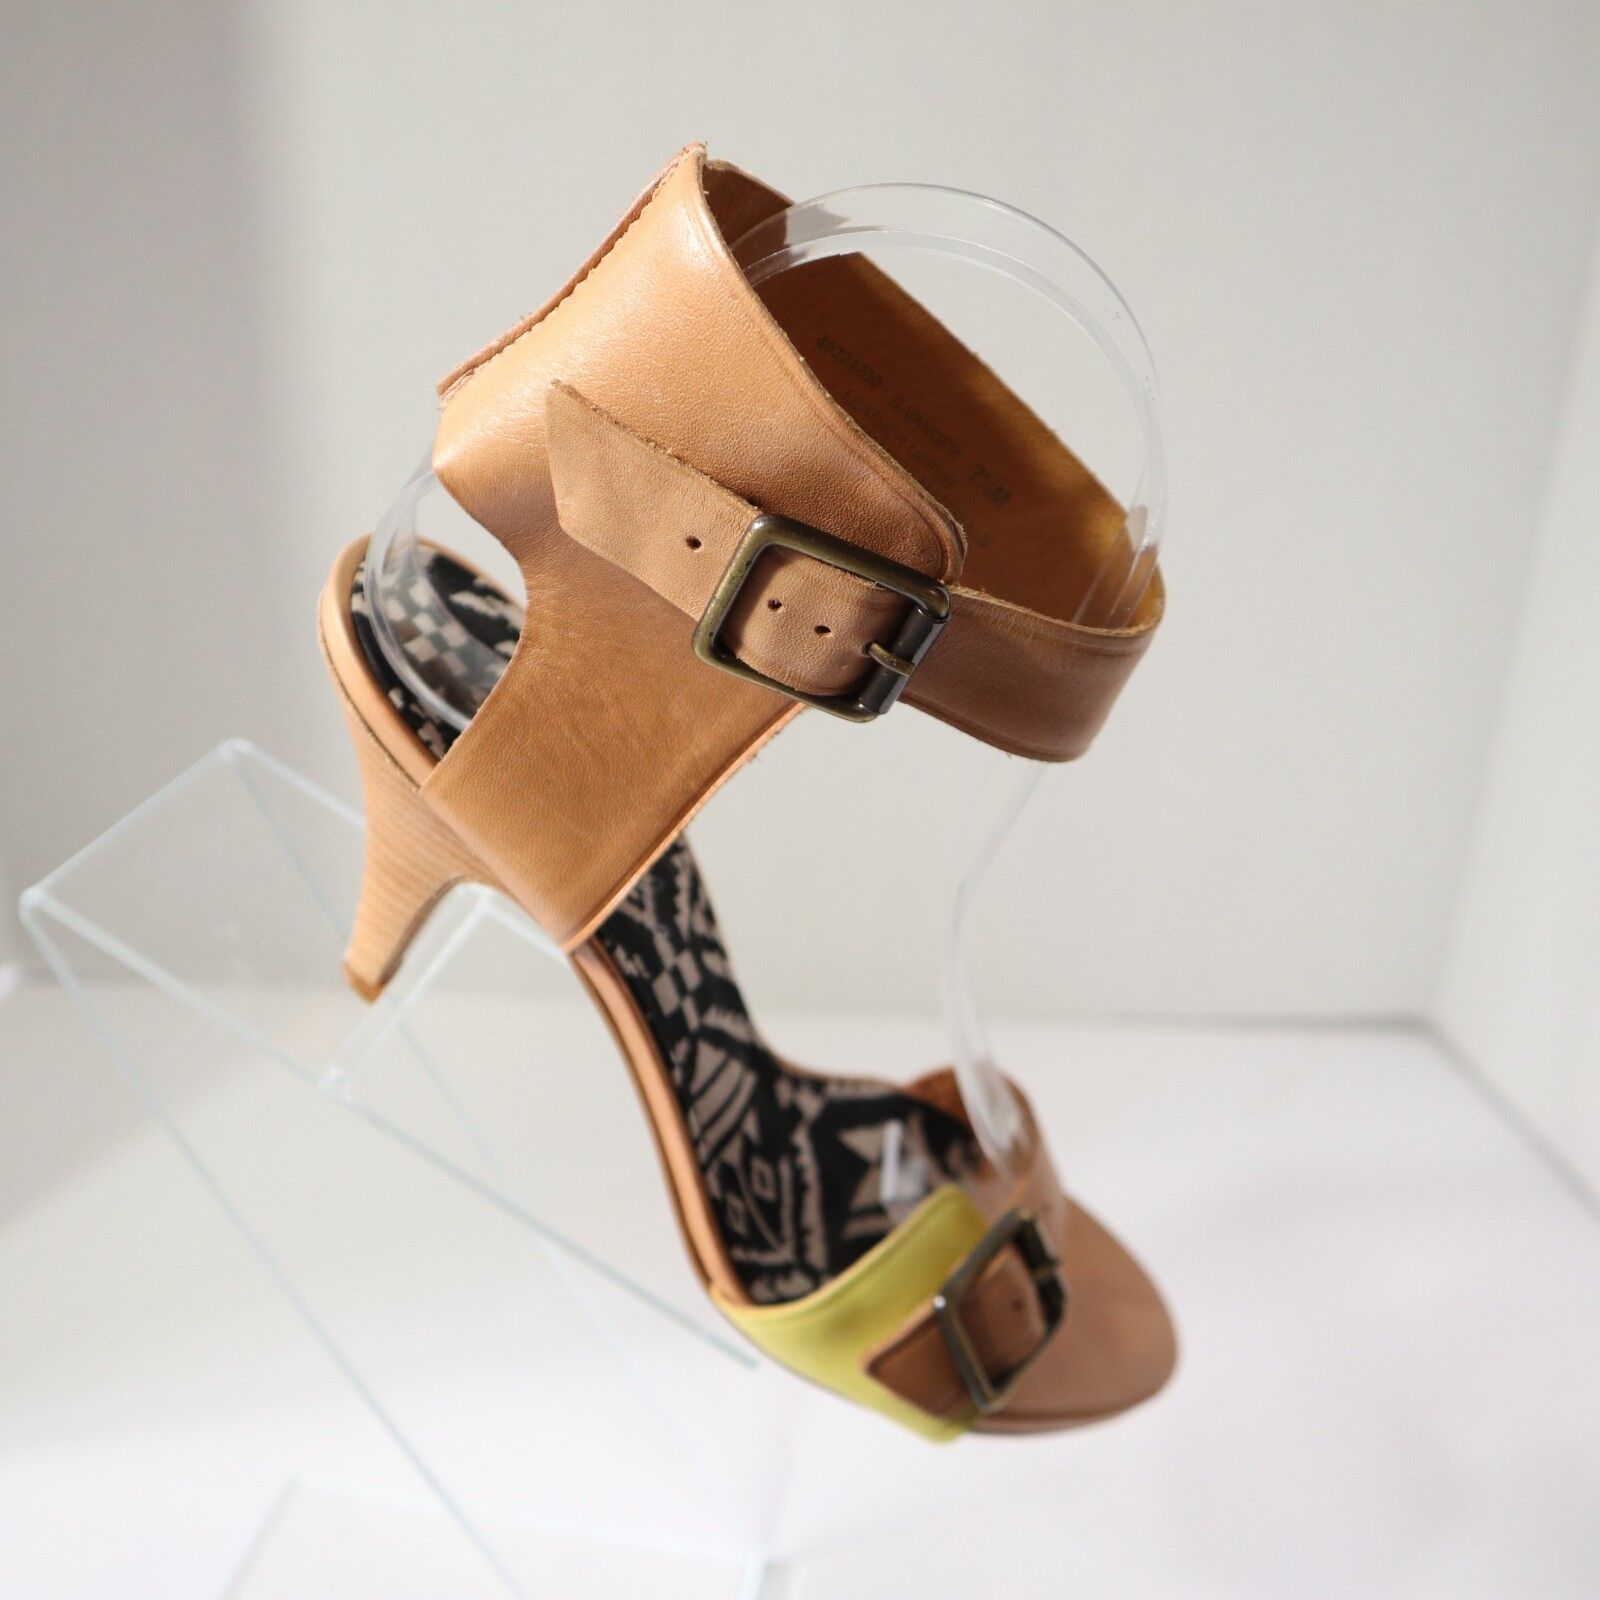 Womens SAM EDELMAN Brown Tan Yellow Leather Sandals Sandals Sandals Size 7.5 M d2eb09